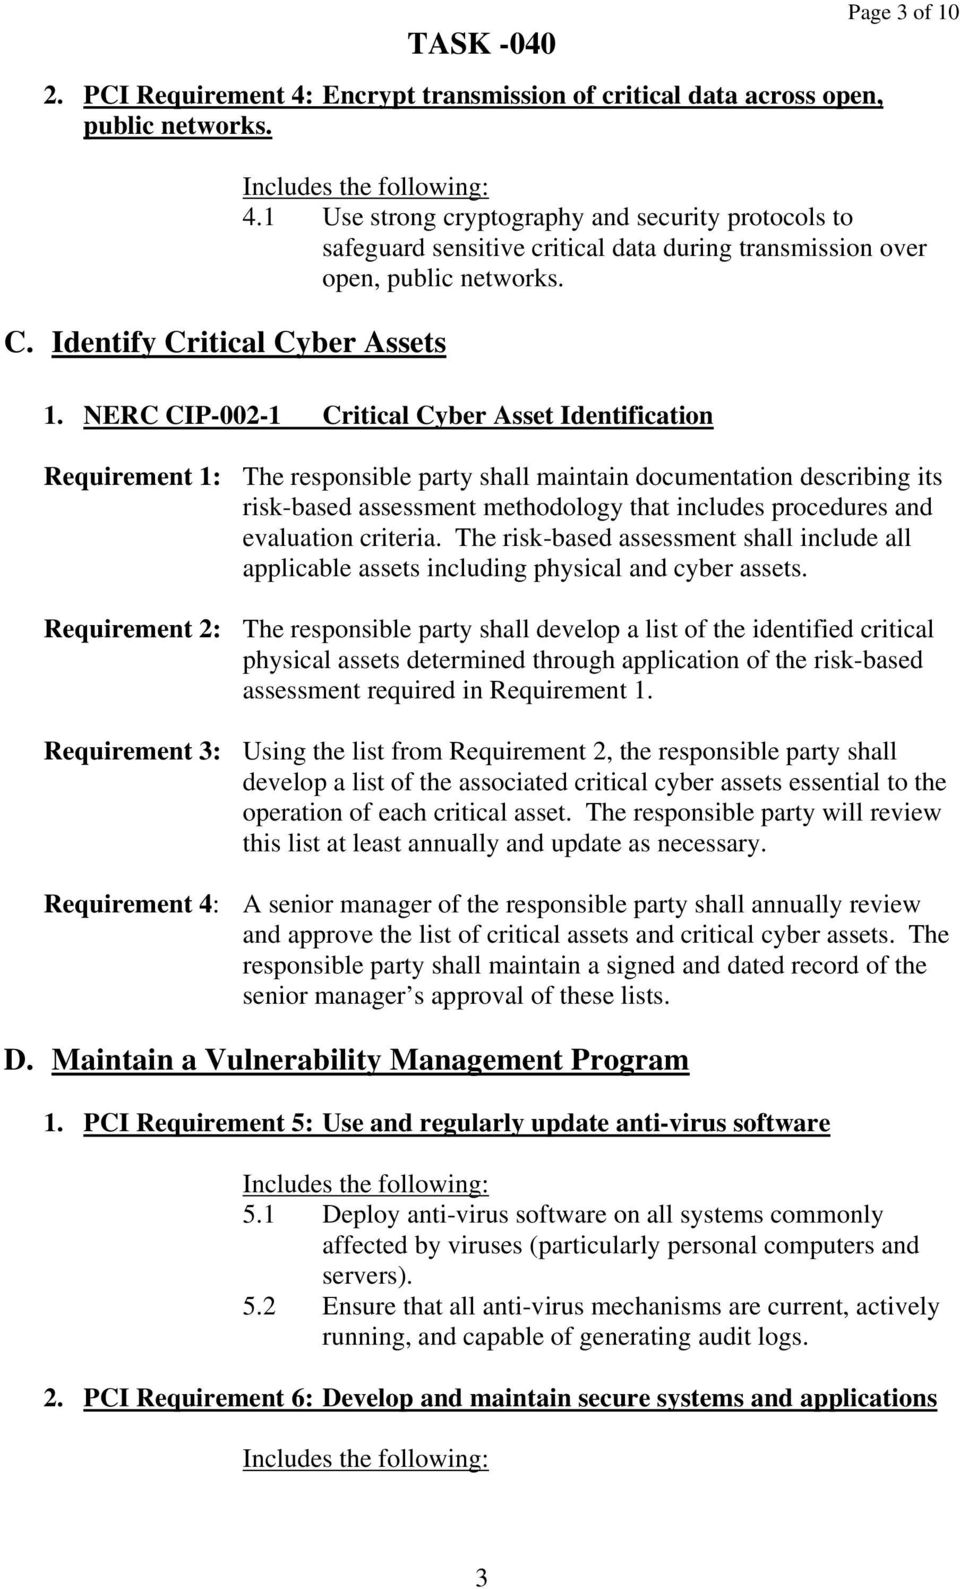 NERC CIP-002-1 Critical Cyber Asset Identification Requirement 1: The responsible party shall maintain documentation describing its risk-based assessment methodology that includes procedures and